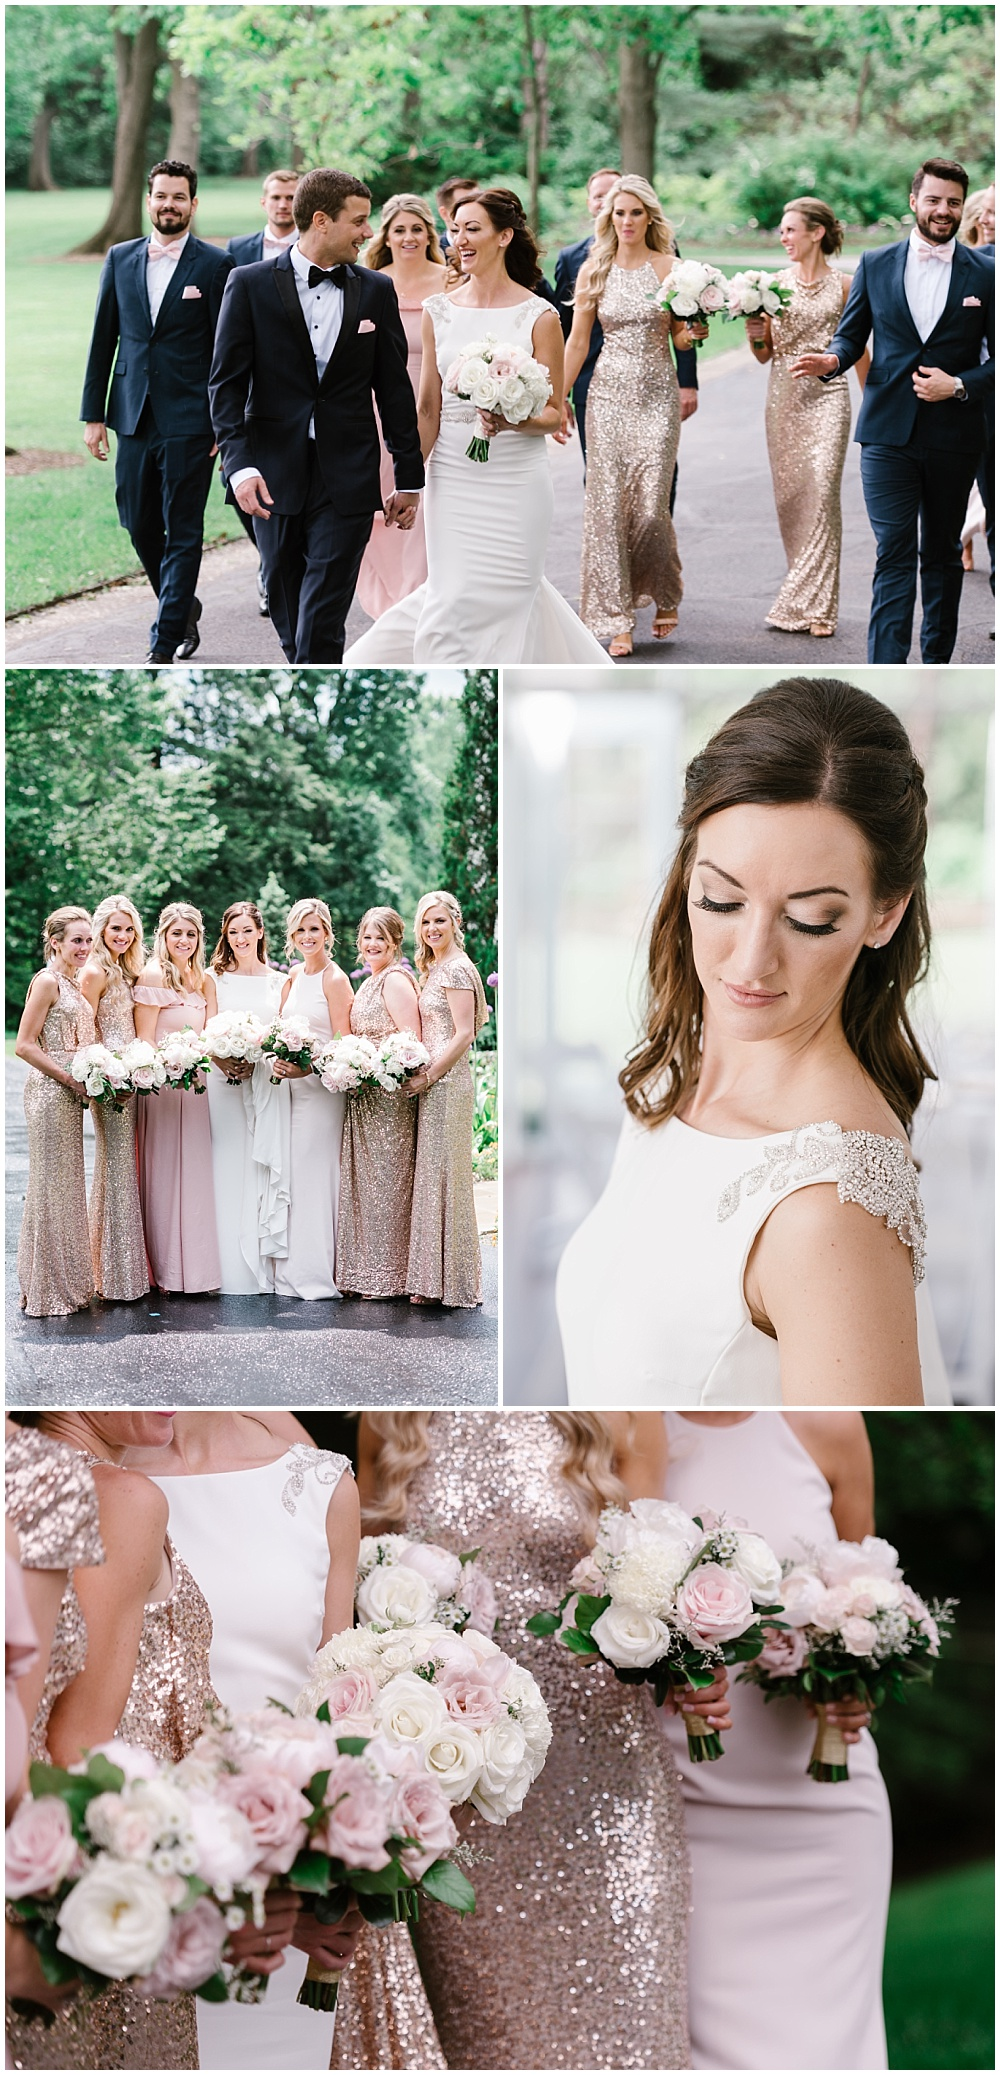 Mix and match blush bridesmaid dresses. Bride and groom outdoor portraits on the grounds of the beautiful Indianapolis Museum of Art Newfields. | Spring blush garden-inspired memorial day weekend wedding at the beautiful Ritz Charles Garden Pavilion with Stacy Able Photography and Jessica Dum Wedding Coordination